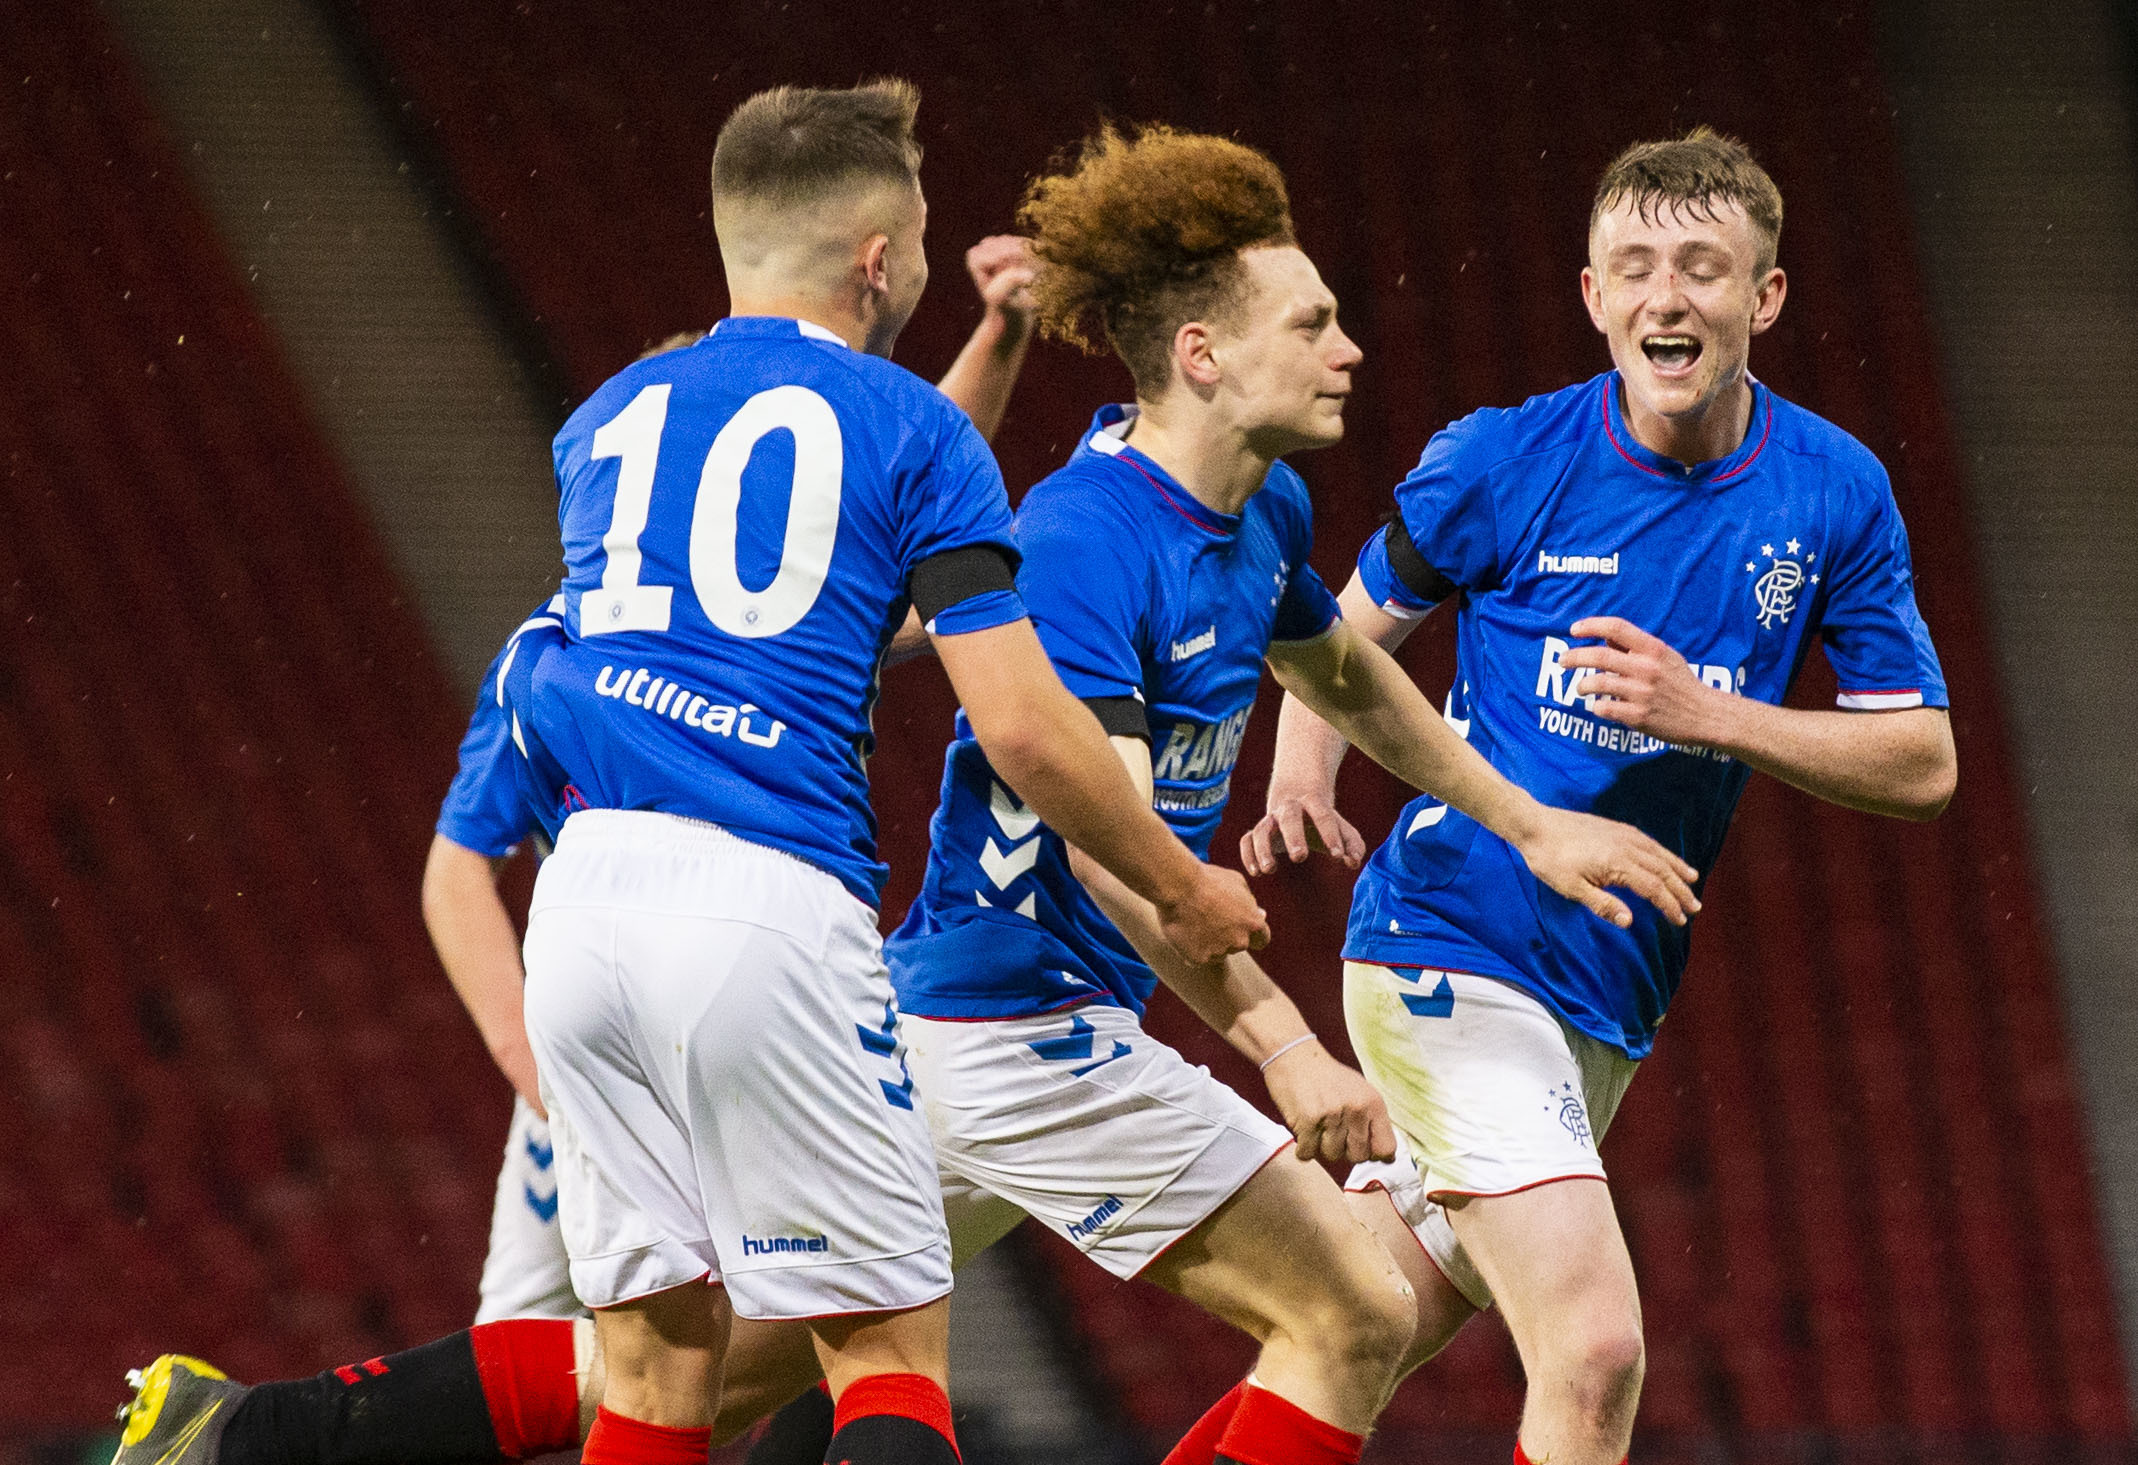 Rangers' Nathan Young-Coombes celebrates after he heads home his side's third goal